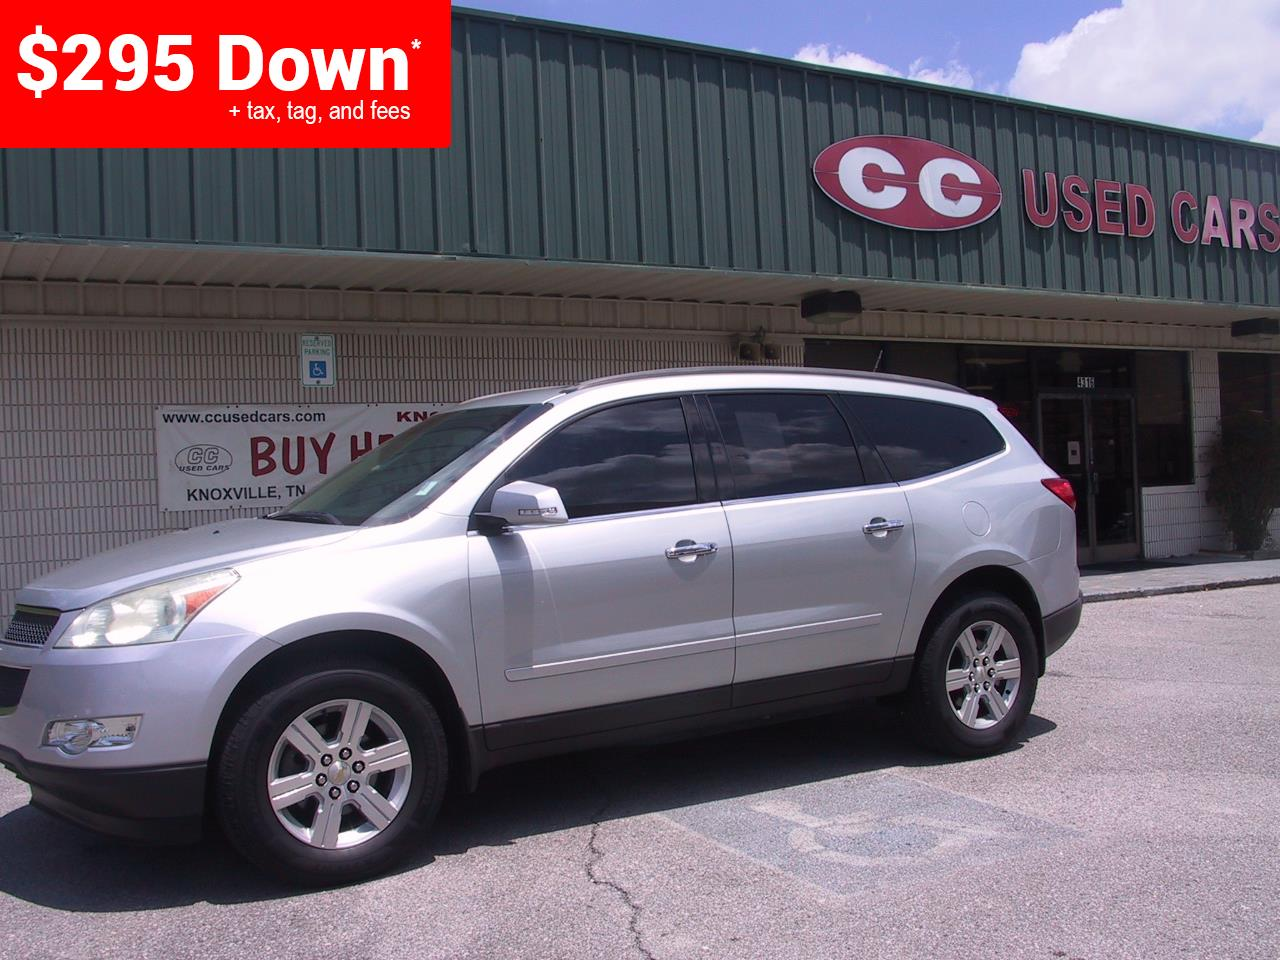 Cc Used Cars Knoxville Tn >> Buy Here Pay Here Cars For Sale Knoxville Tn 37912 Cc Used Cars